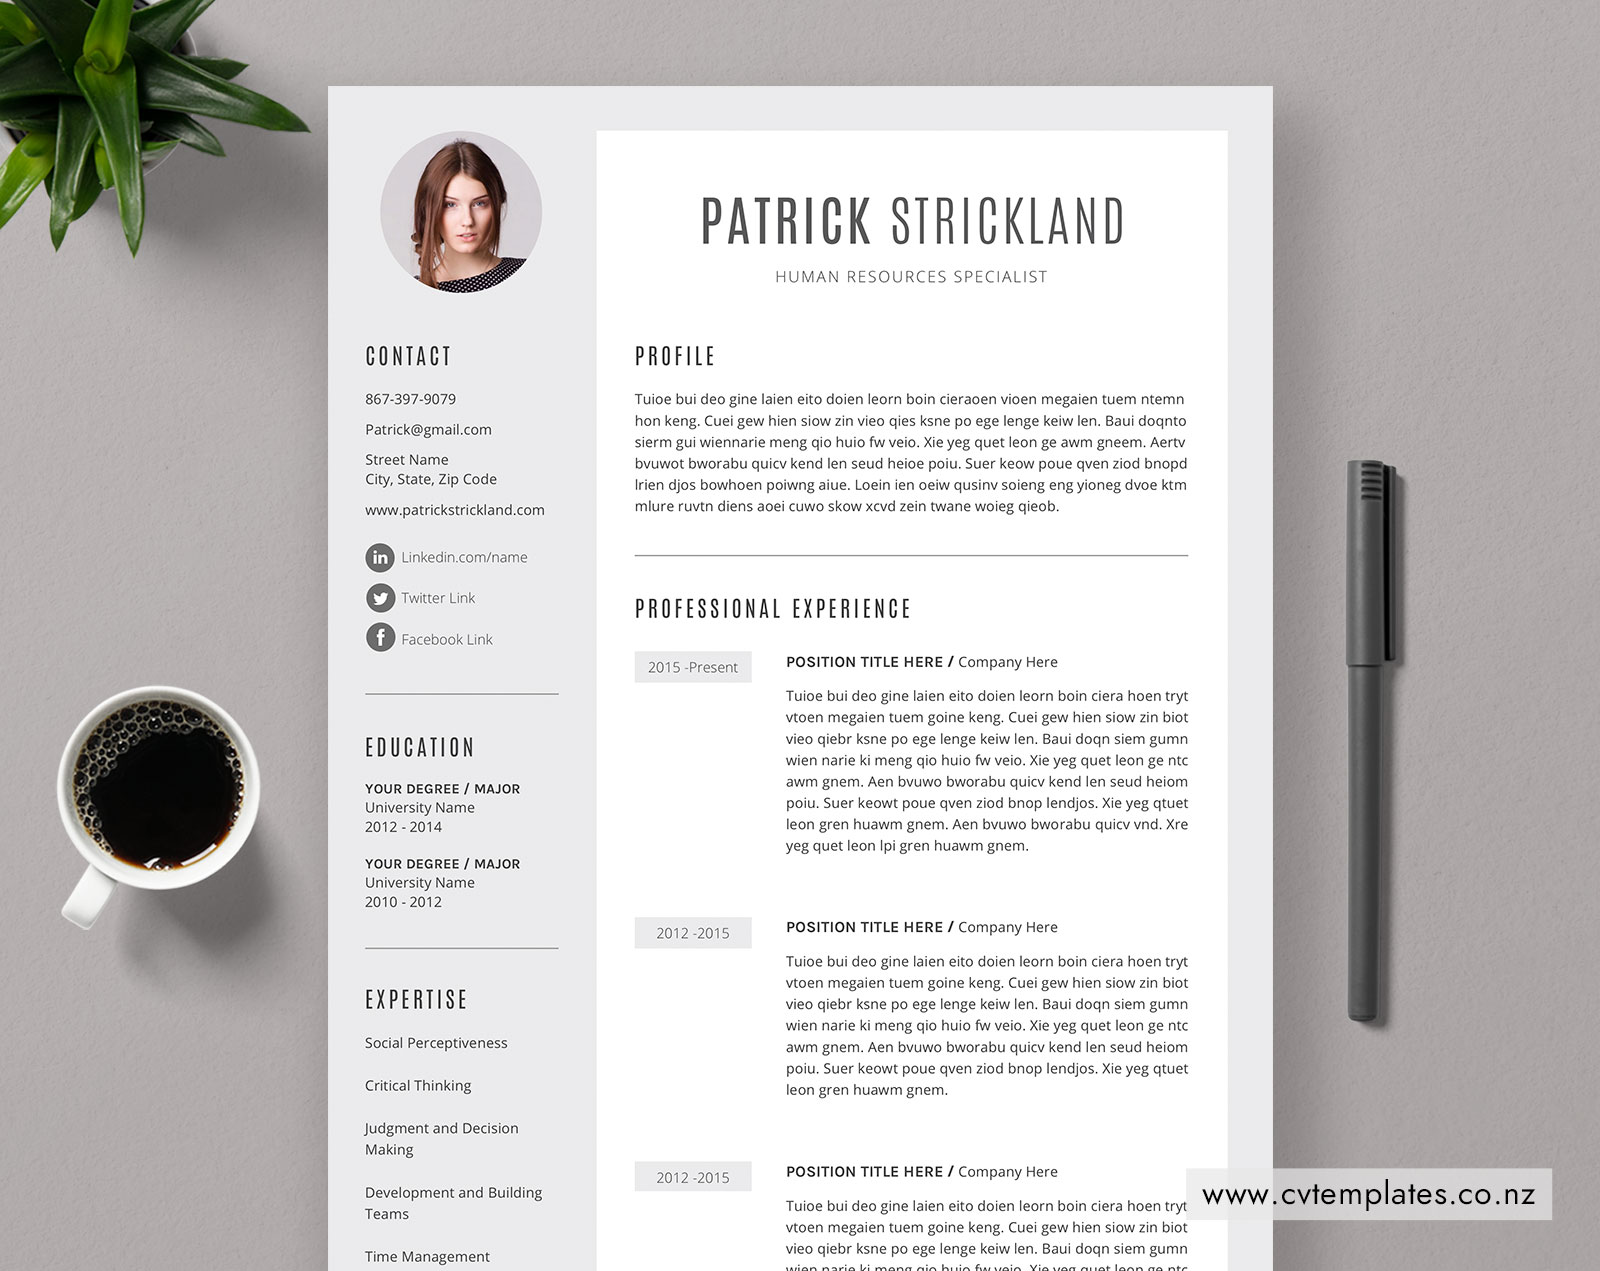 10 Highly Functional and Professional CV Templates and Cover ...